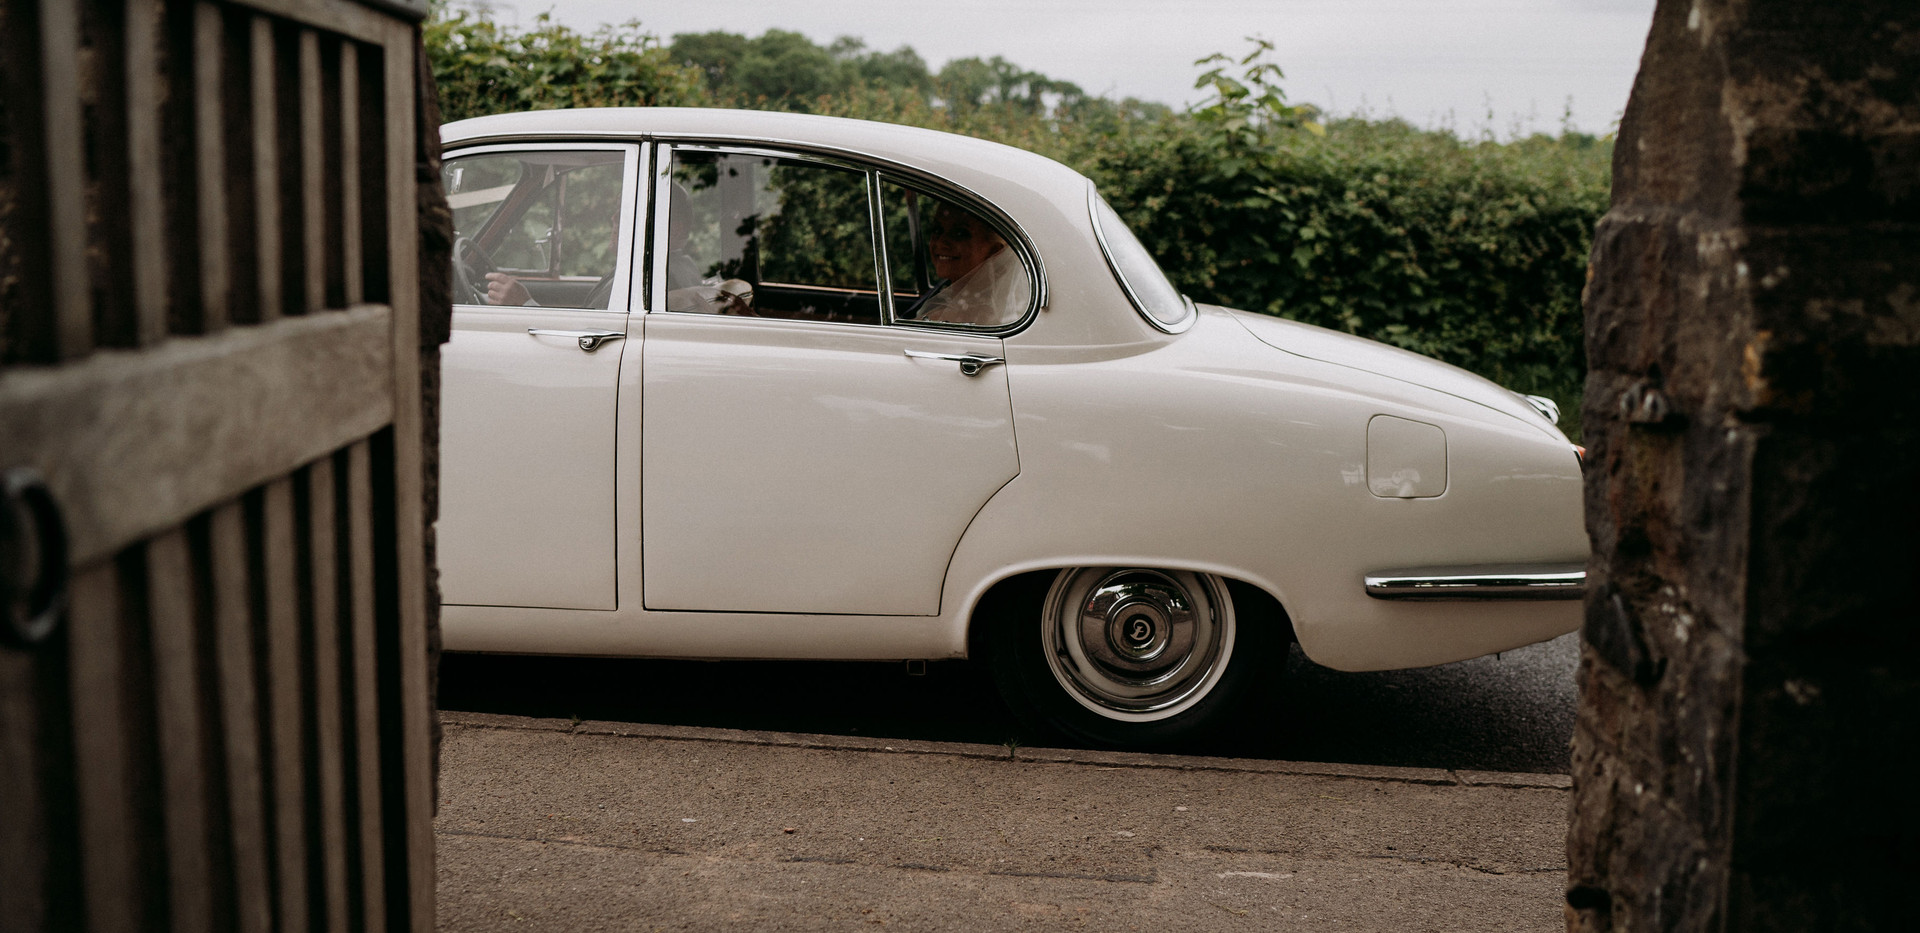 Classic white wedding car